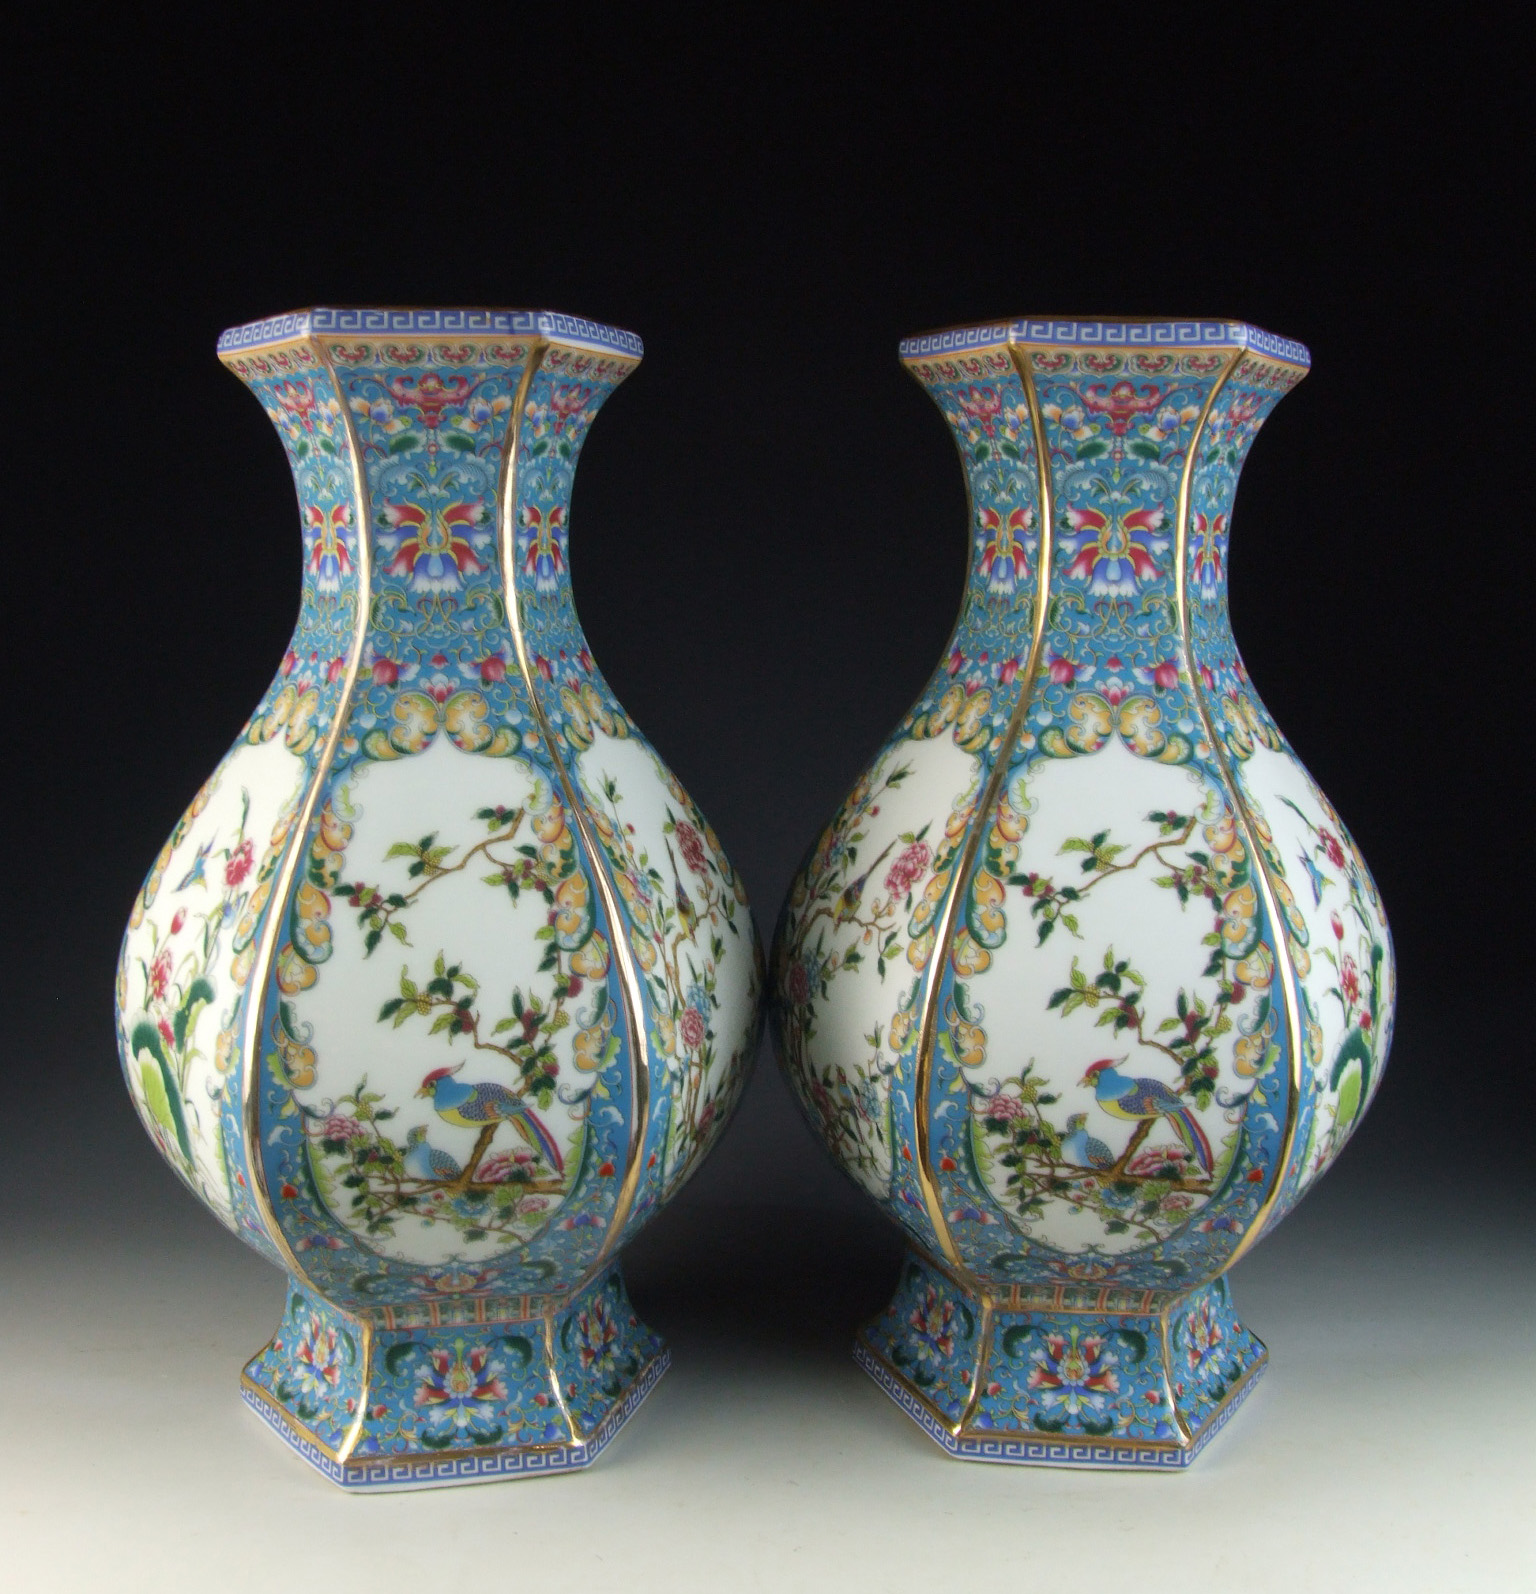 Chinese antique pair of enamel ware color porcelain vases with chinese antique pair of enamel ware color porcelain reviewsmspy